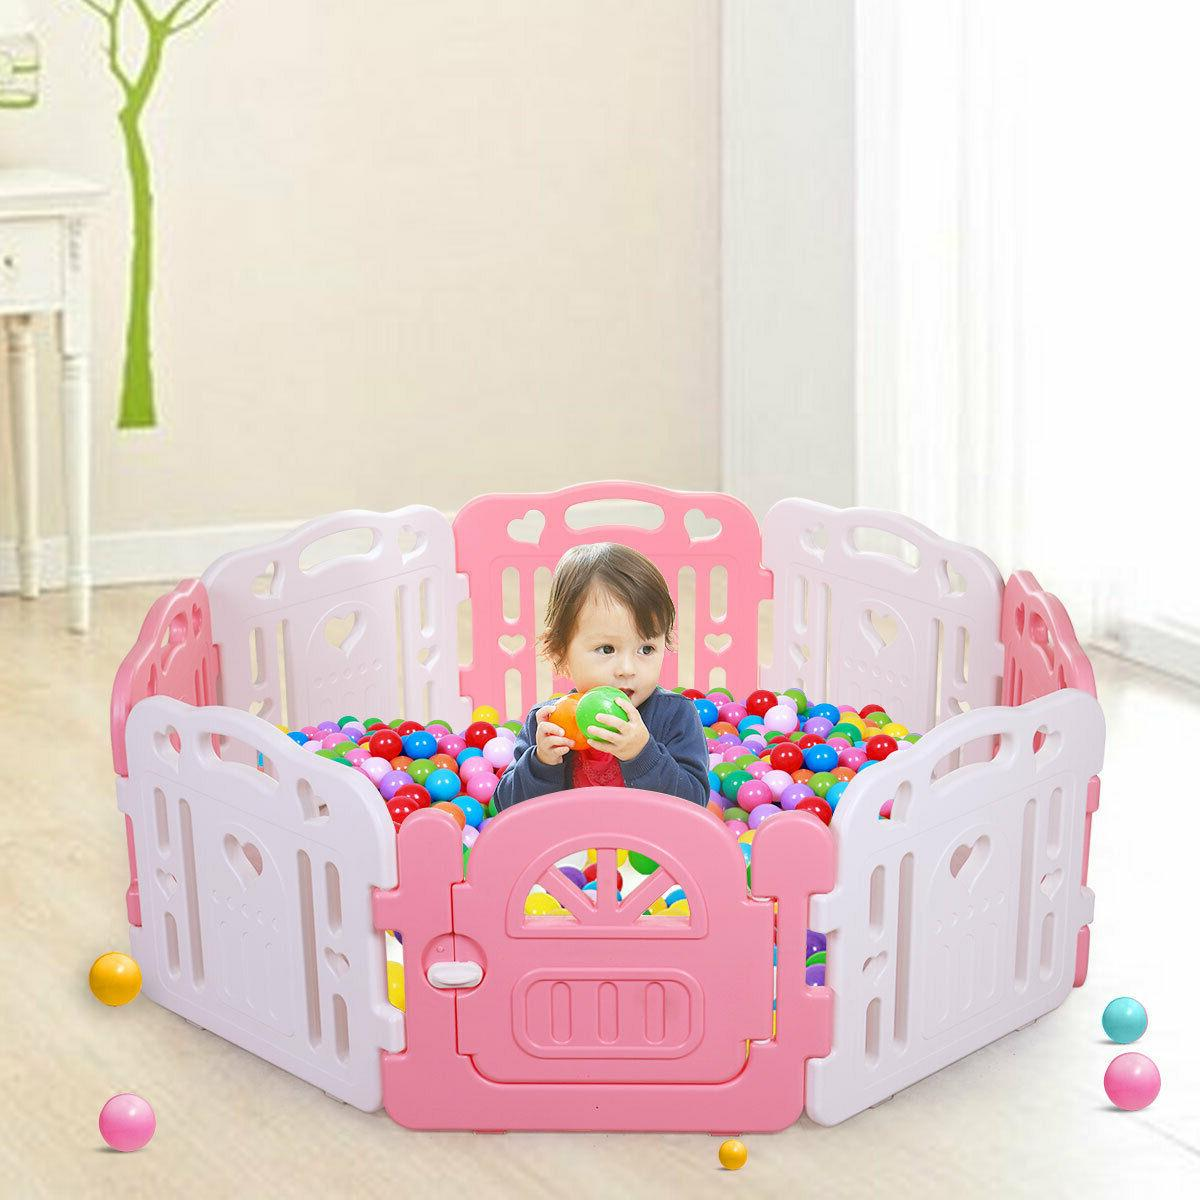 Baby Playpen Baby Yards Fence 8 Panel Activity Center Yard Pink